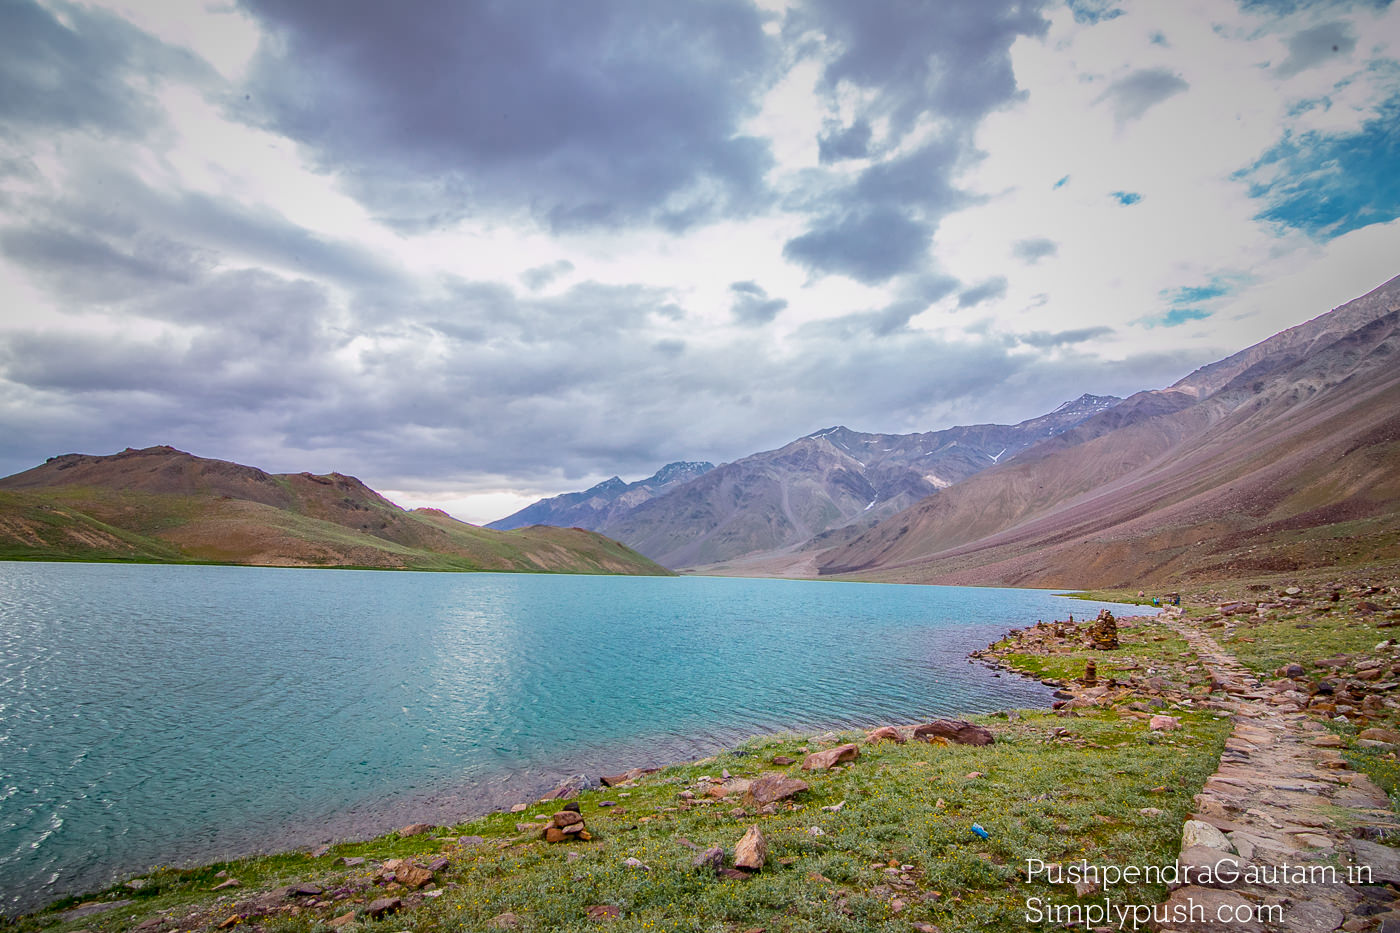 Manali-leh-manali-road-trip-route-plan-bike-trip-best-event-travel-lifestyle-photographer-pushpendra-gautam